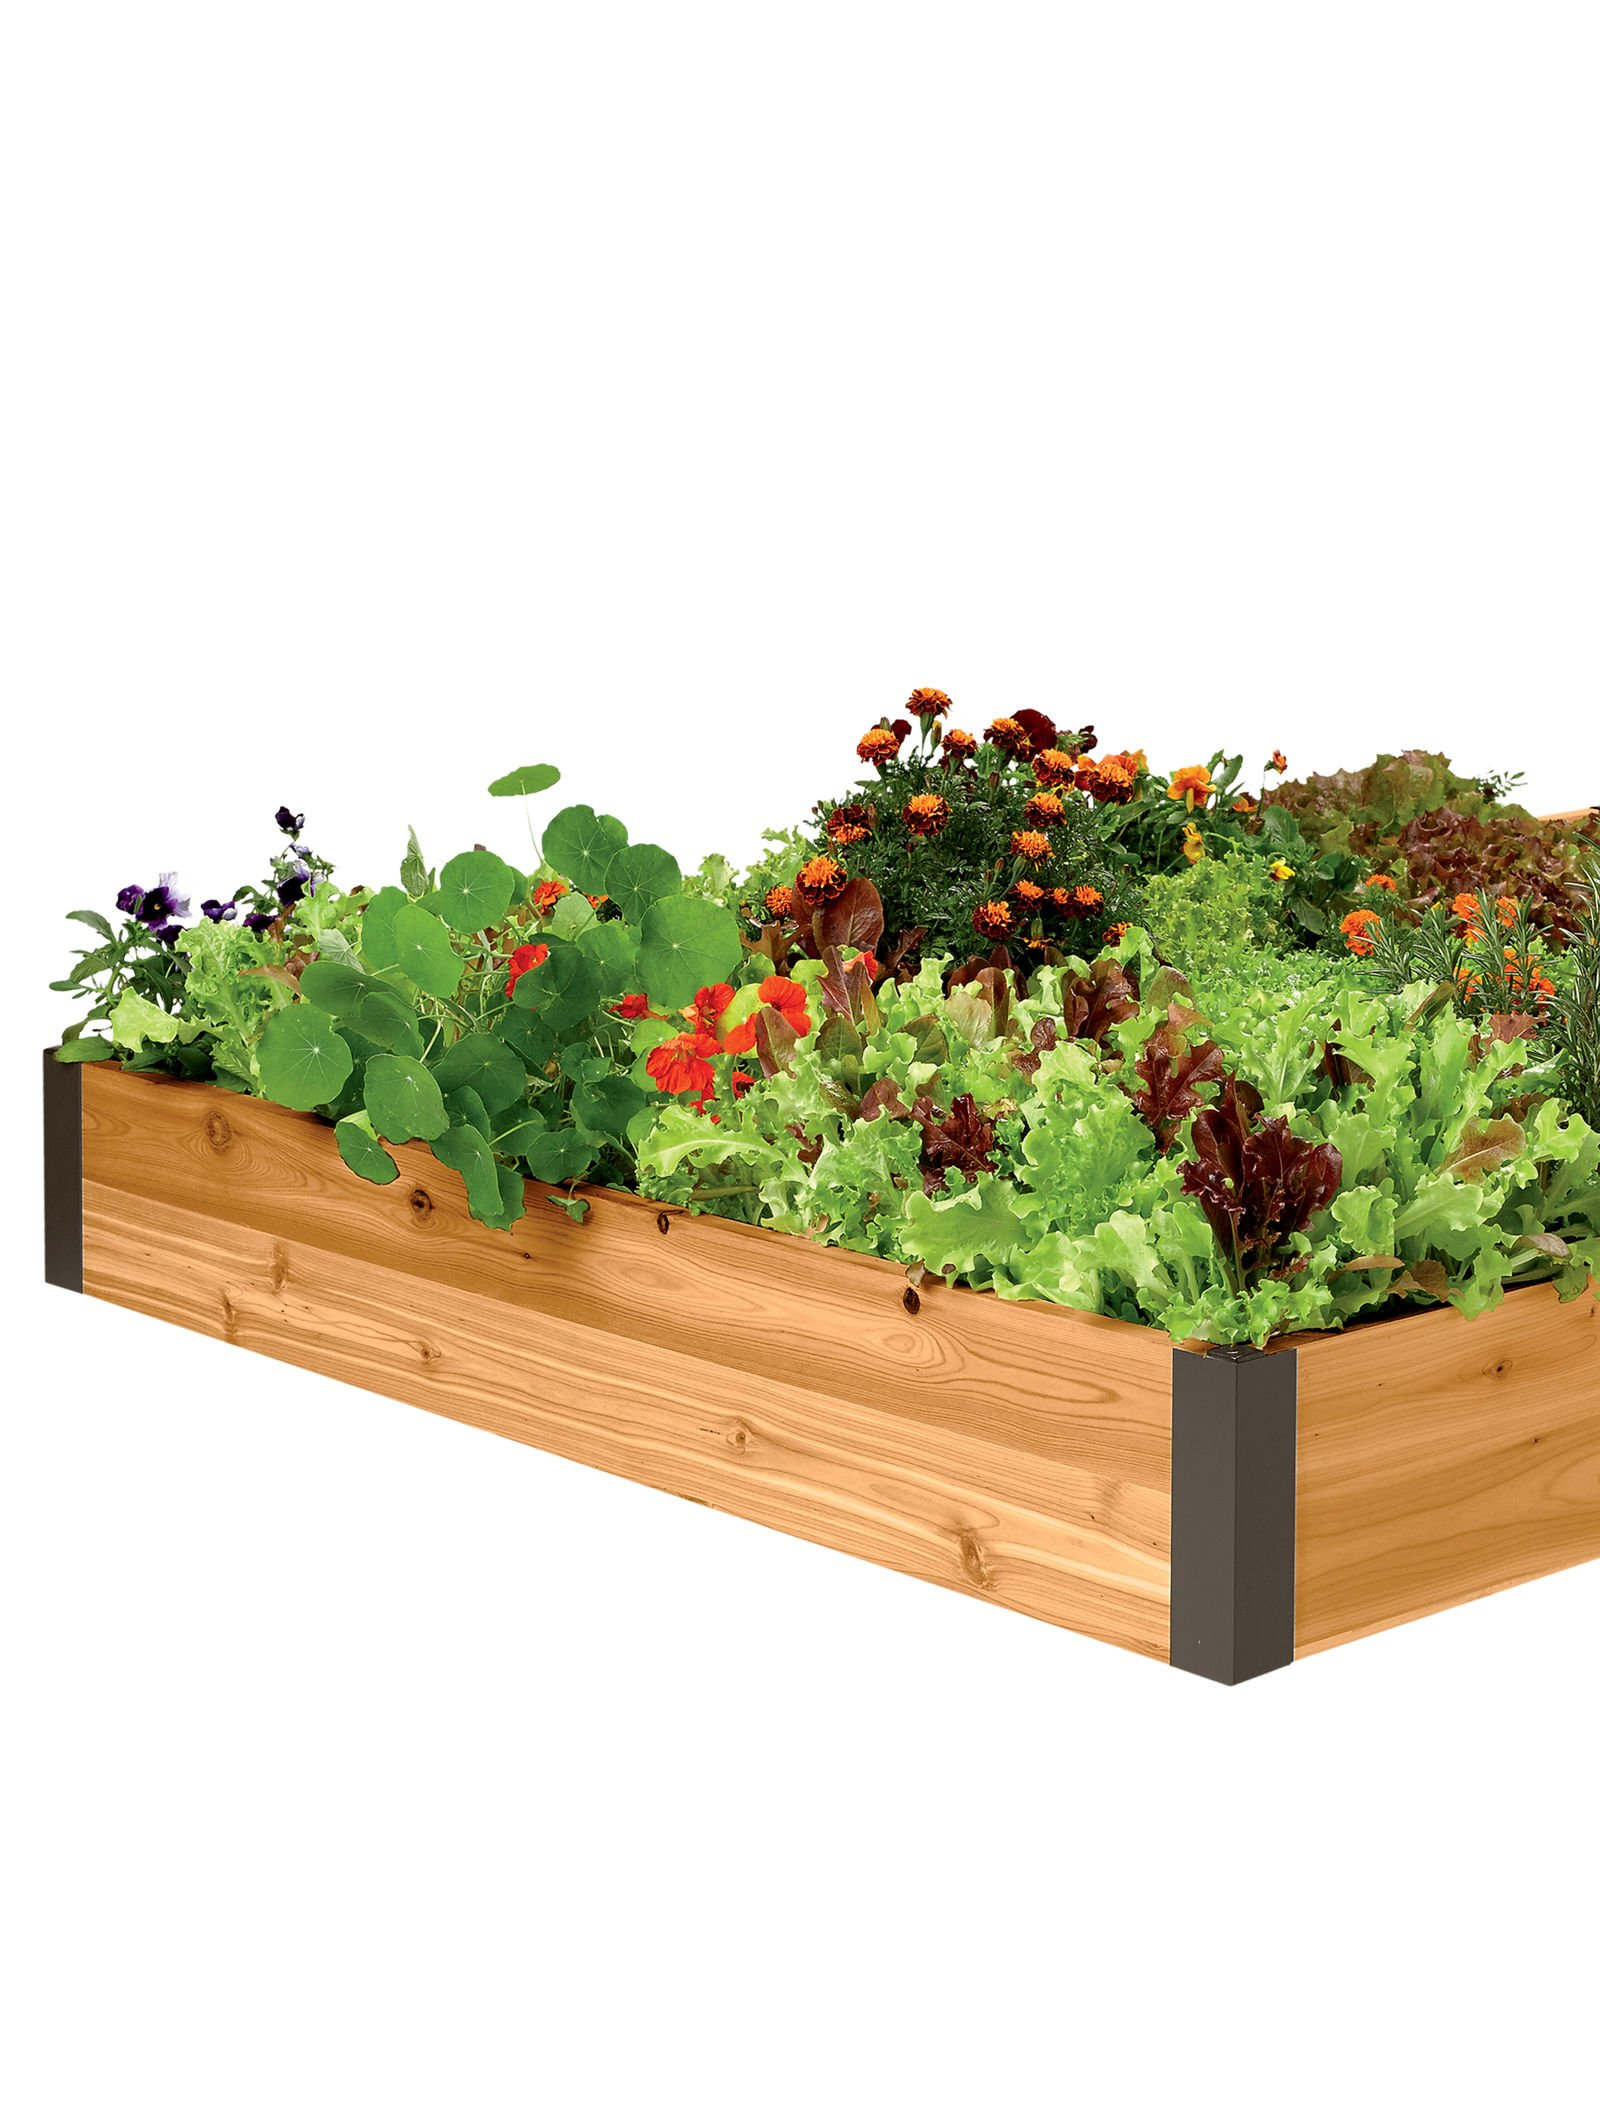 Raised Garden Bed 4' x 6' by Gardener's Supply Company